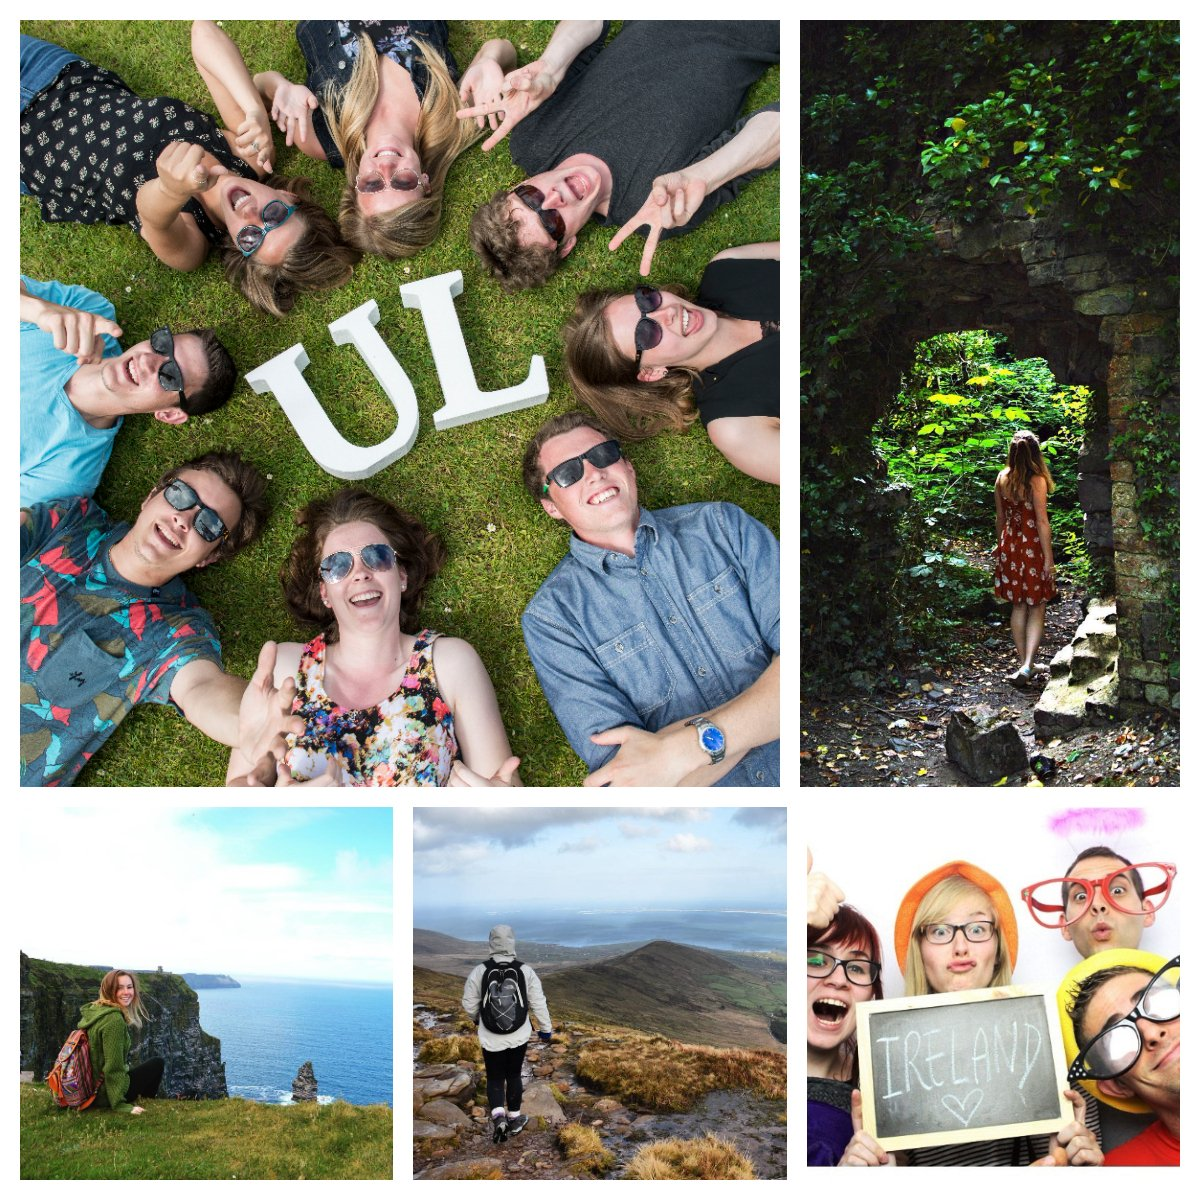 Thinking about studying abroad this summer? Always wanted to visit Ireland? Study for 3 weeks at the University of Limerick and you can have the experience of a lifetime!   http://www. ul.ie/international/ summer-schools &nbsp; …   #StudyAtUL #SummerSchool #StudyAbroad #StudyinIreland<br>http://pic.twitter.com/t86zRA7eiT